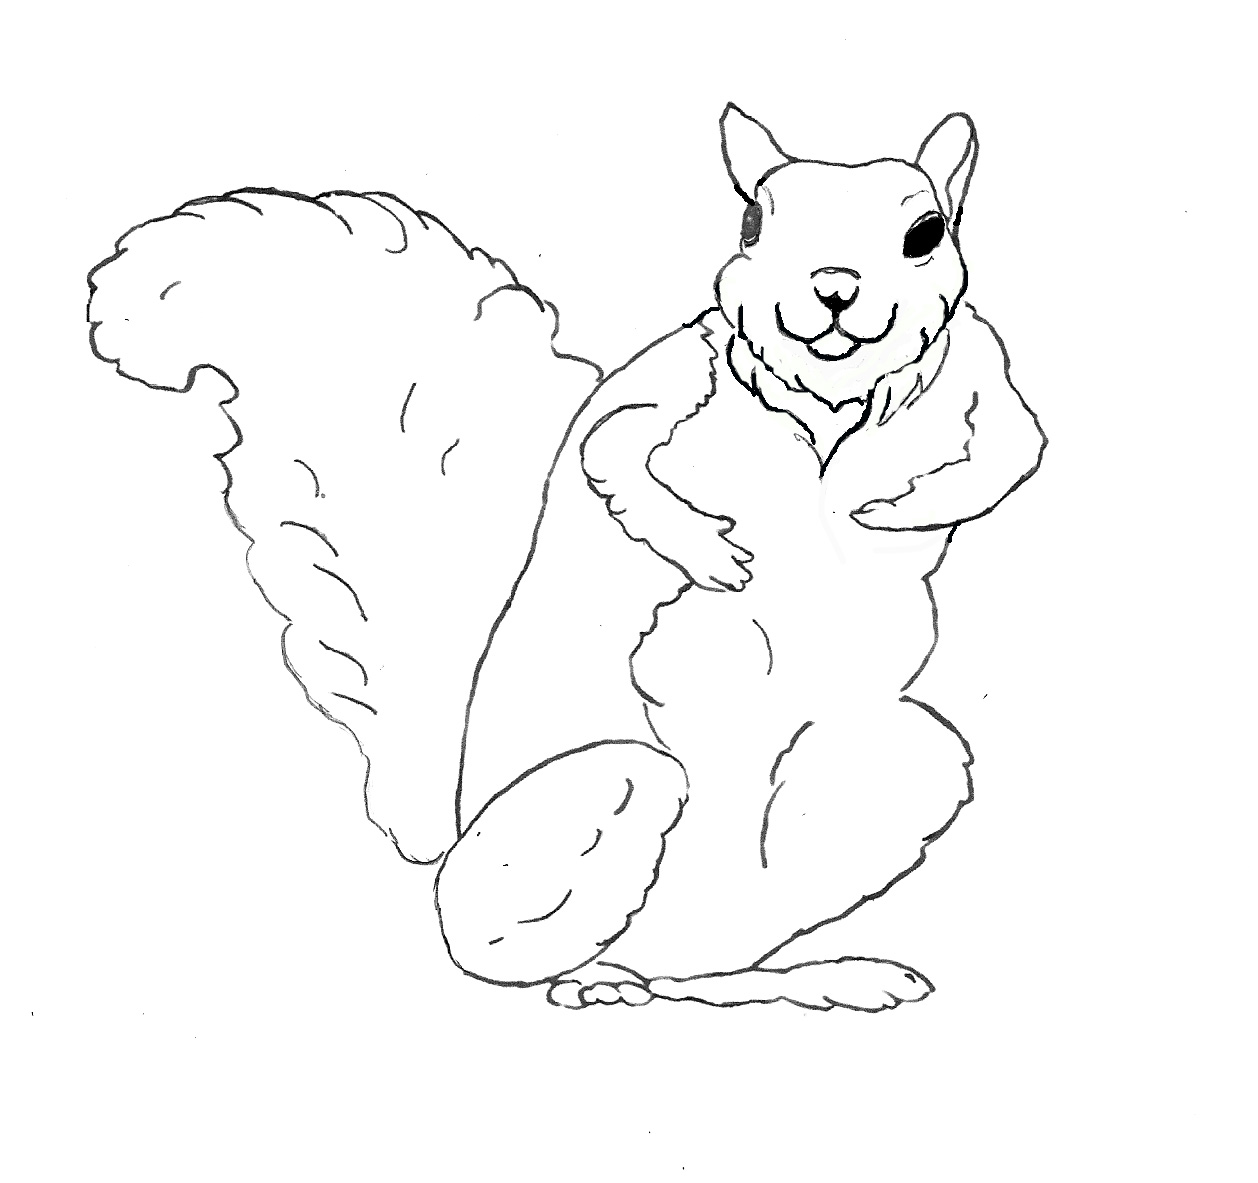 flying squirrel coloring page flying squirrel from the tree coloring pages tree coloring squirrel flying page